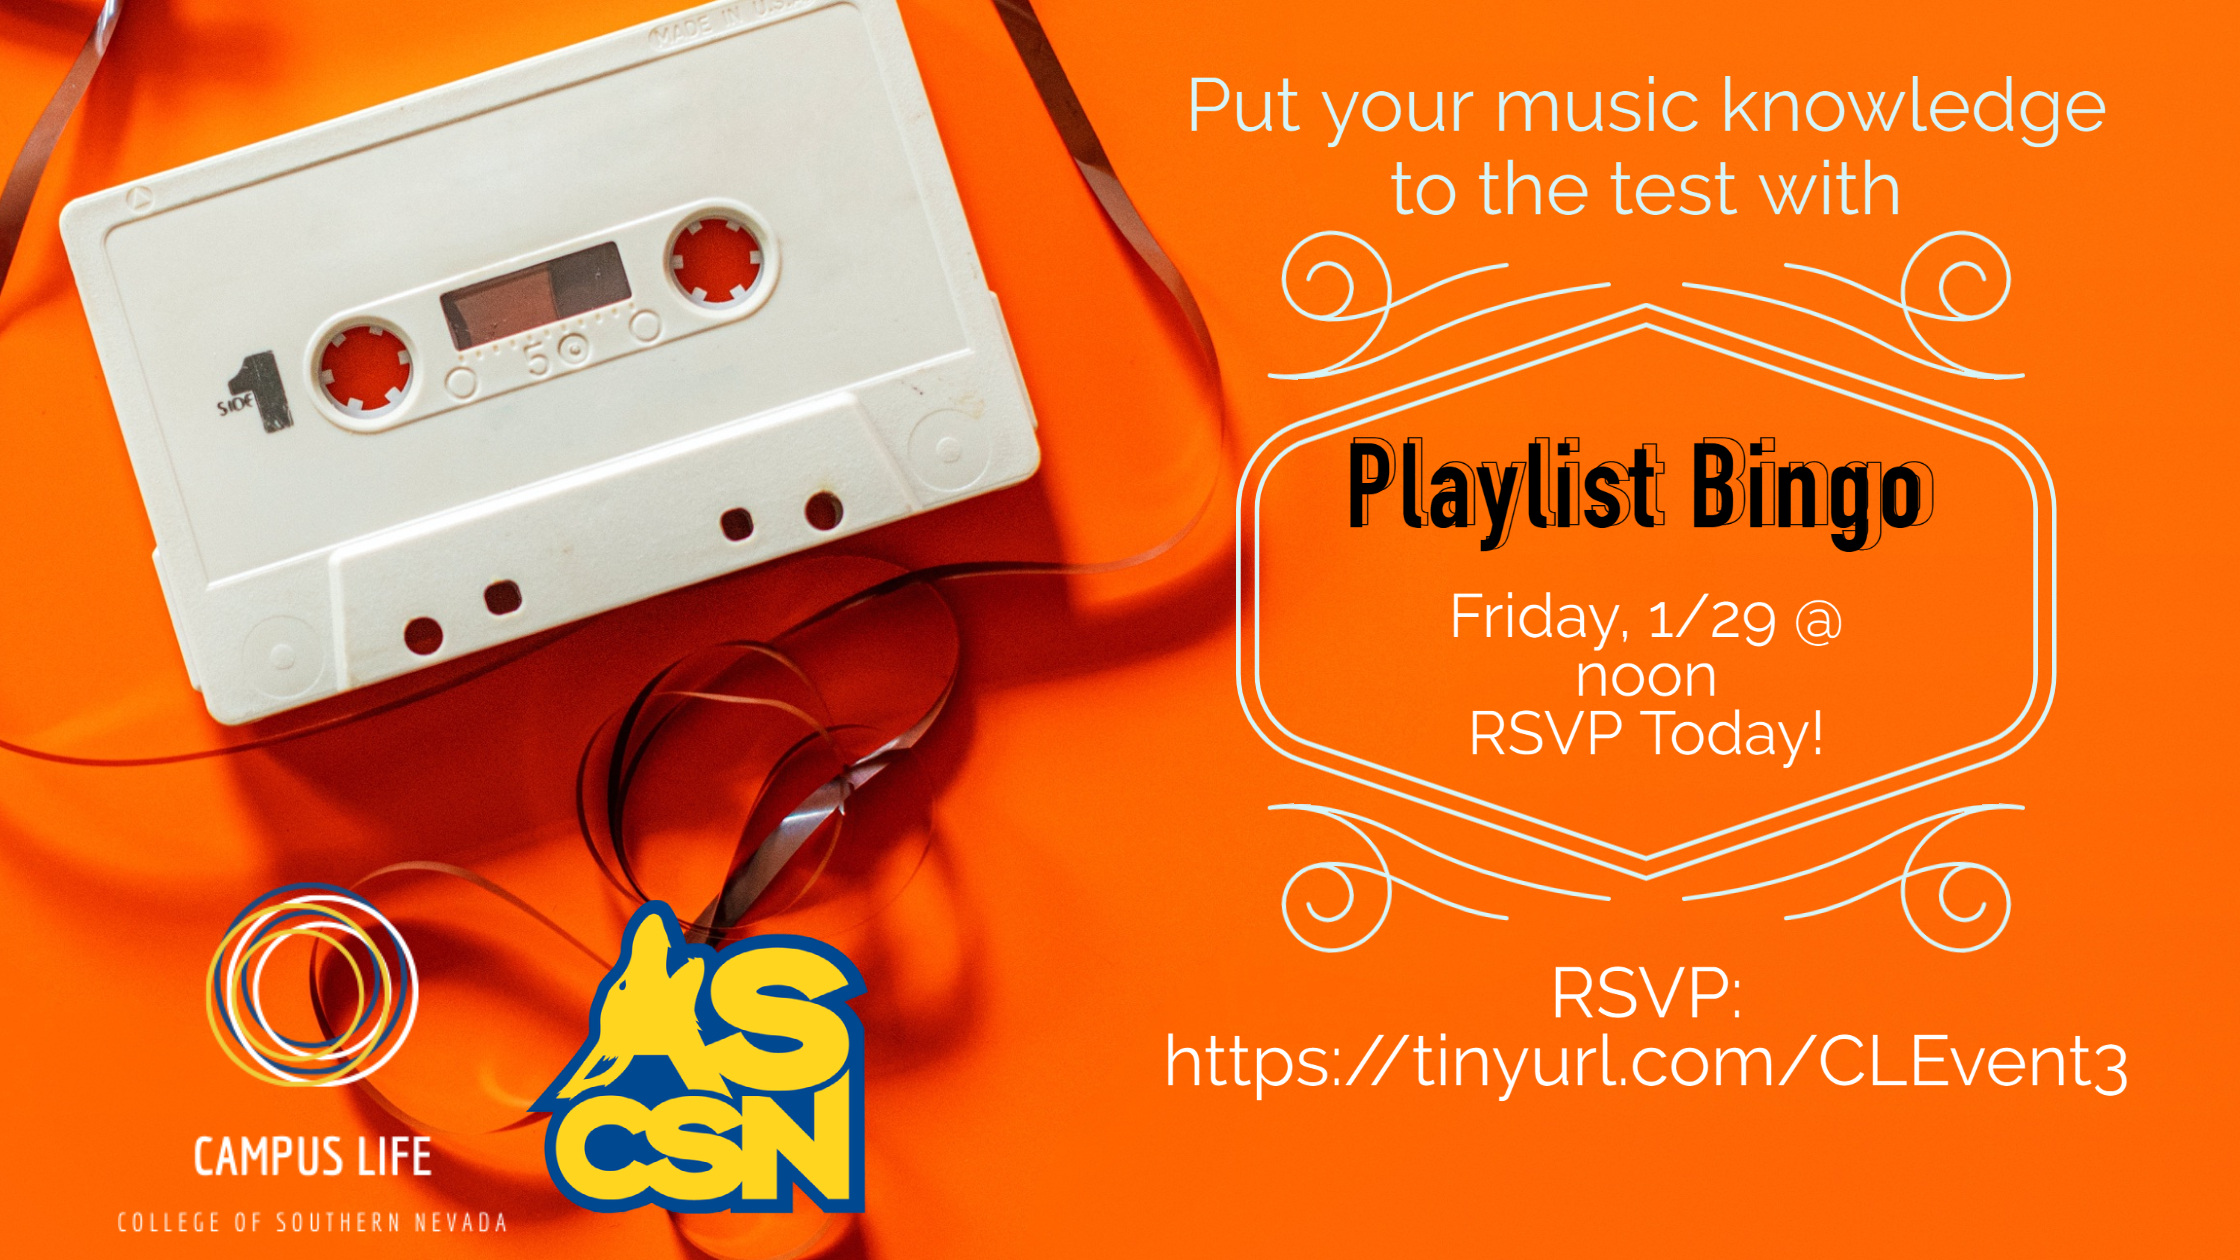 cassette tape with bingo event date and time